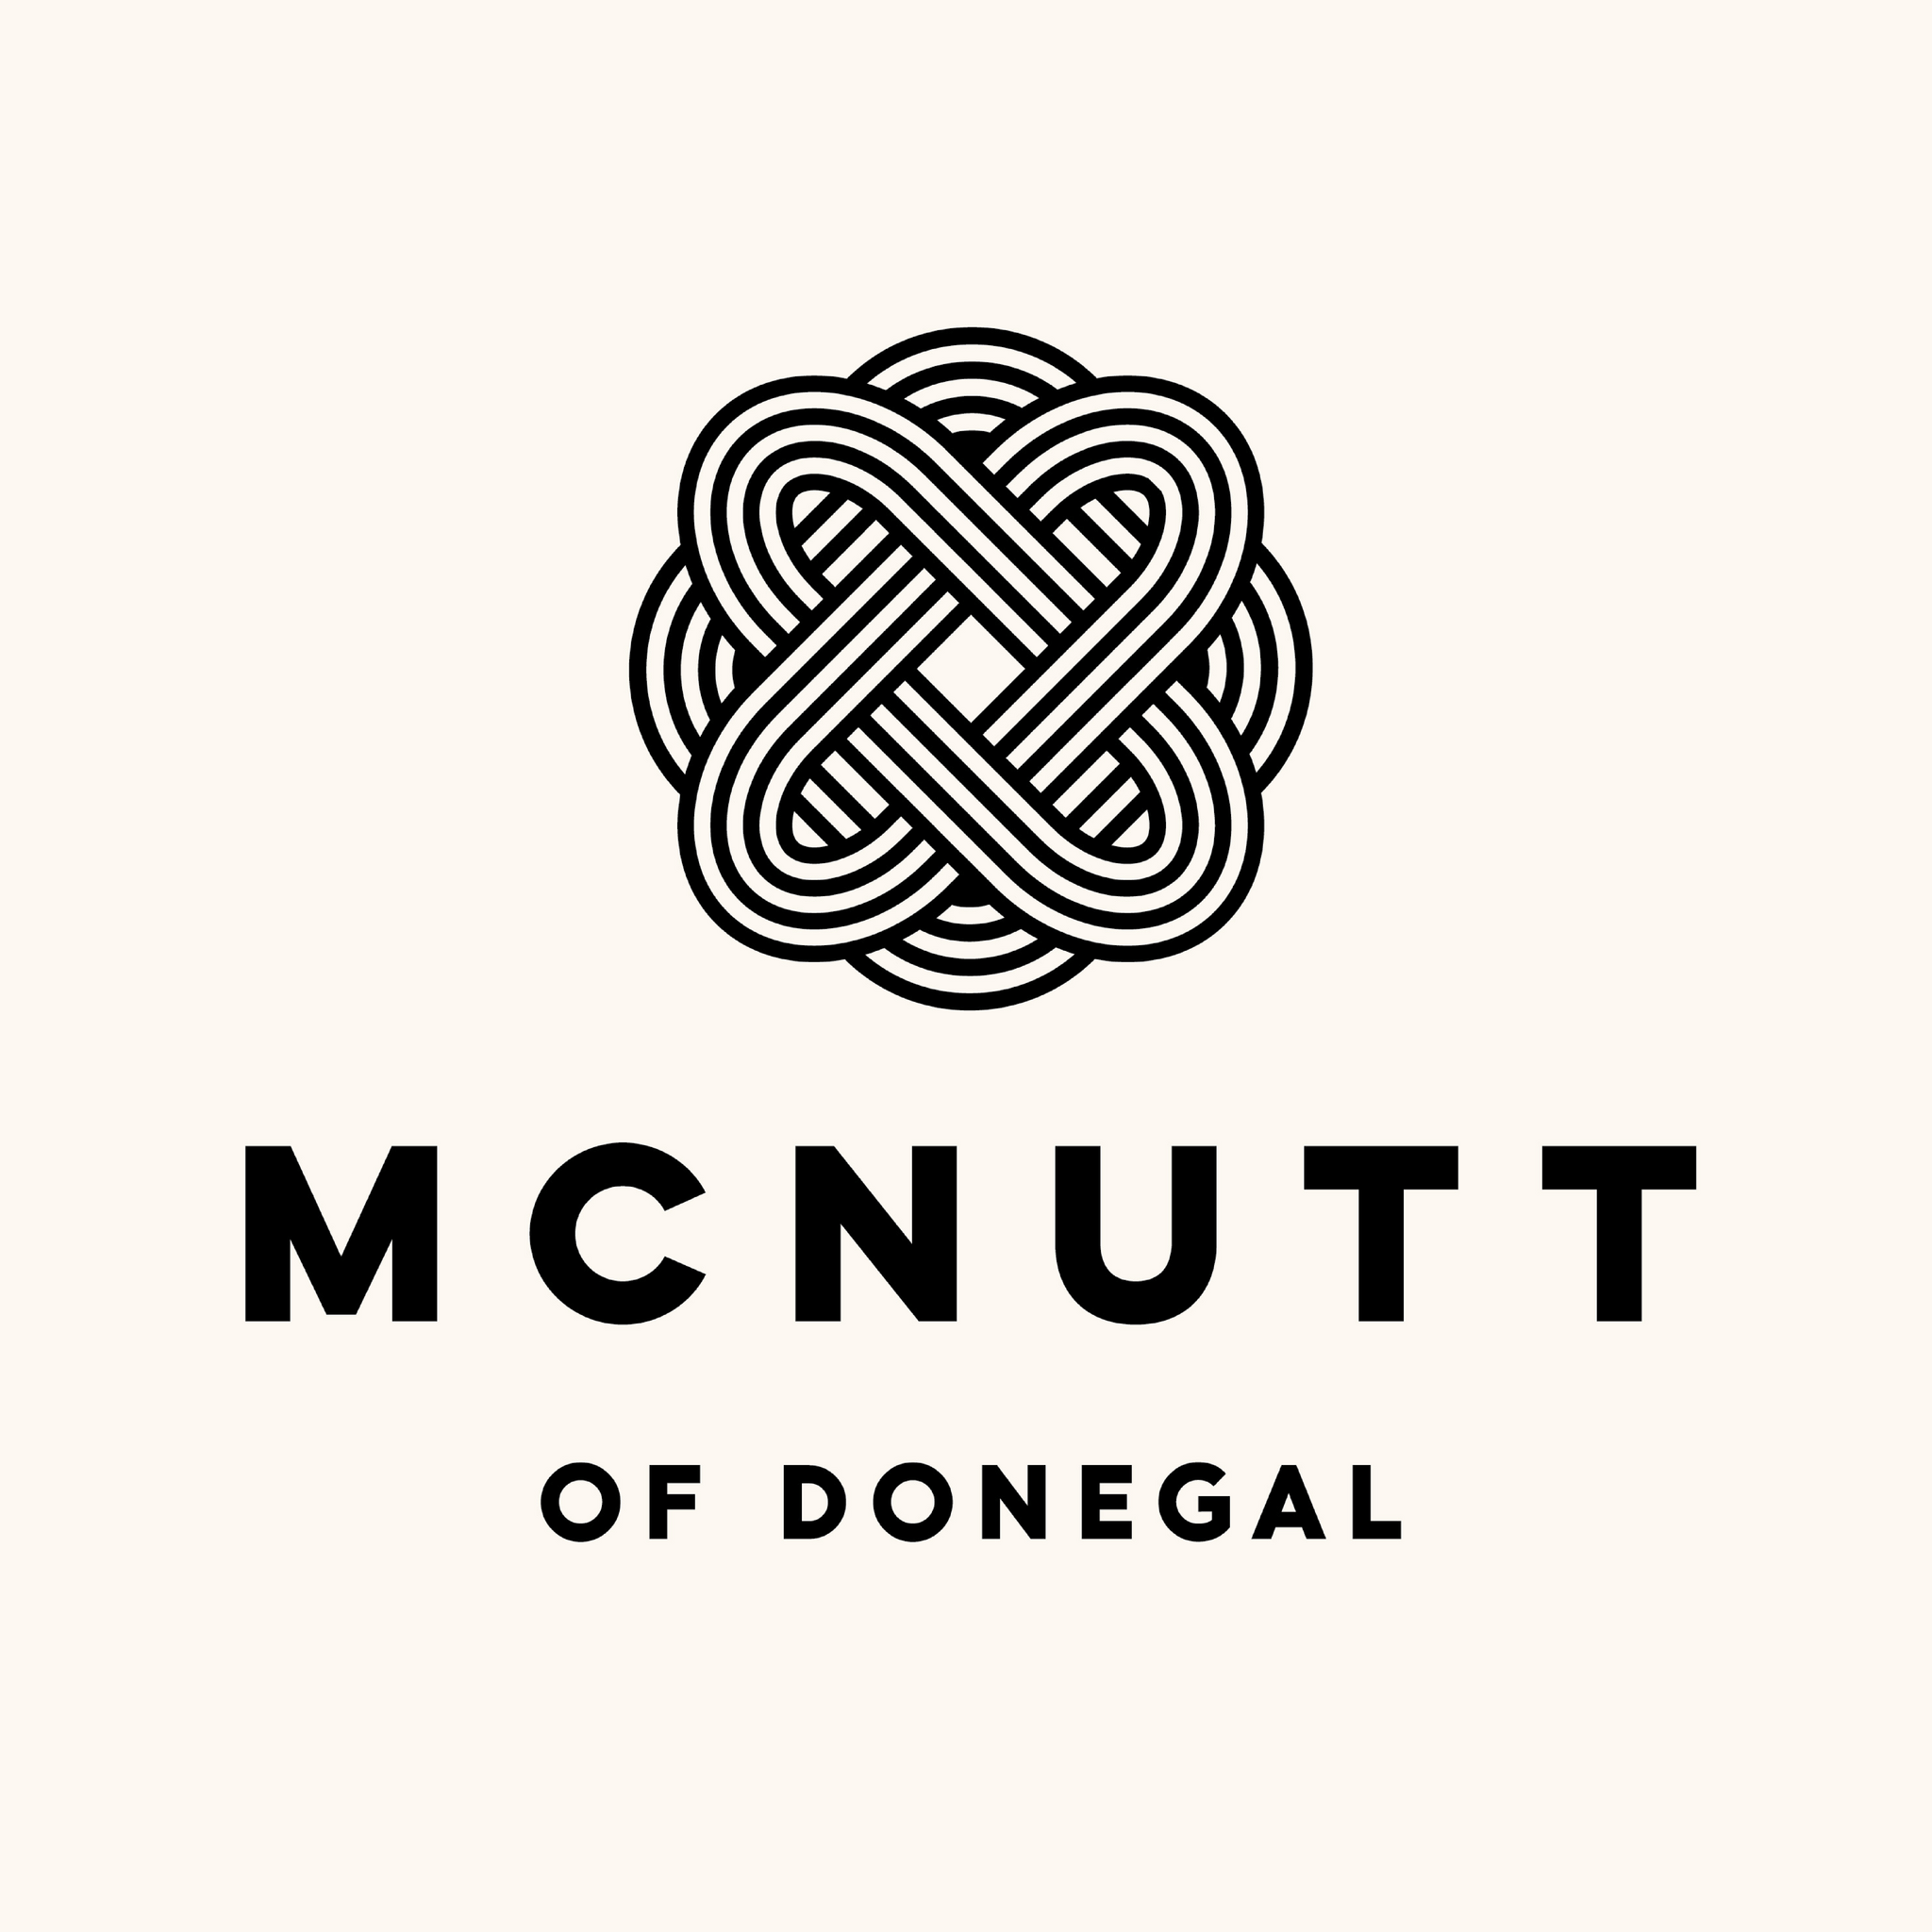 McNutts of Donegal Ltd